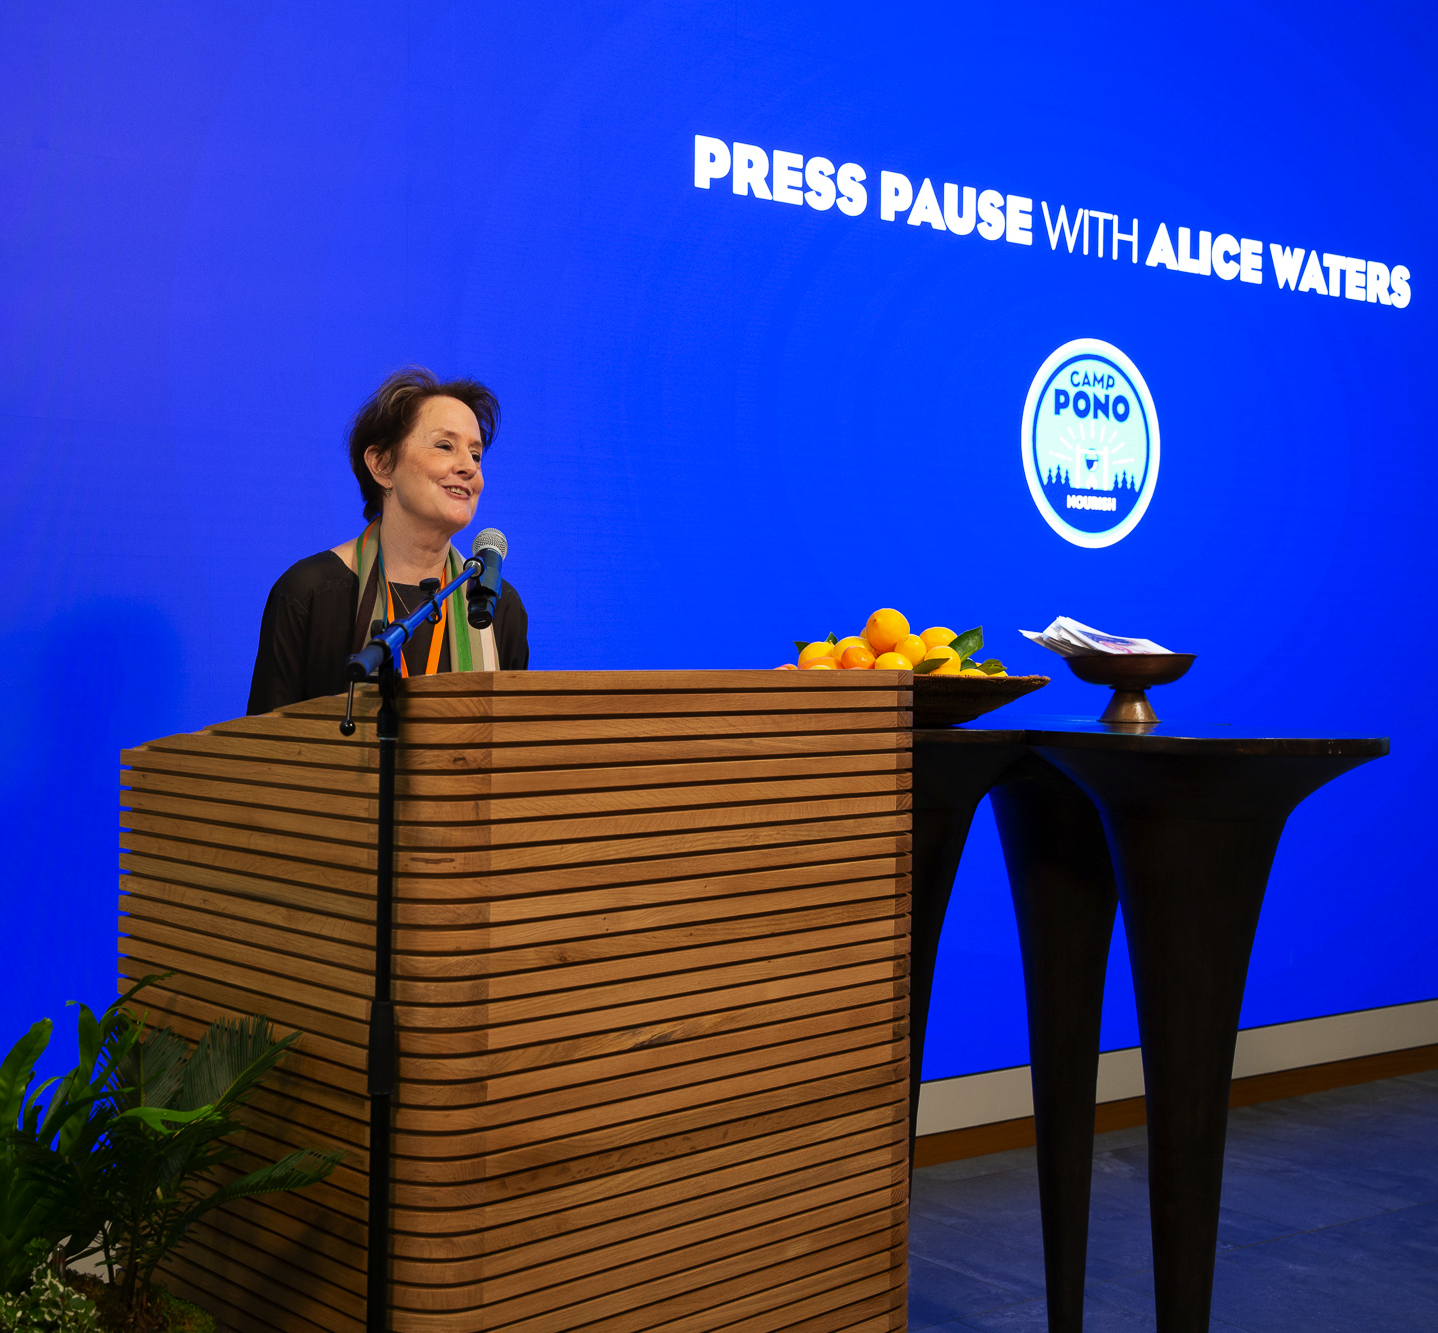 """An image of Alice Waters speaking at Salesforce with """"Press Pause with Alice Waters"""" displayed on a screen in the background."""